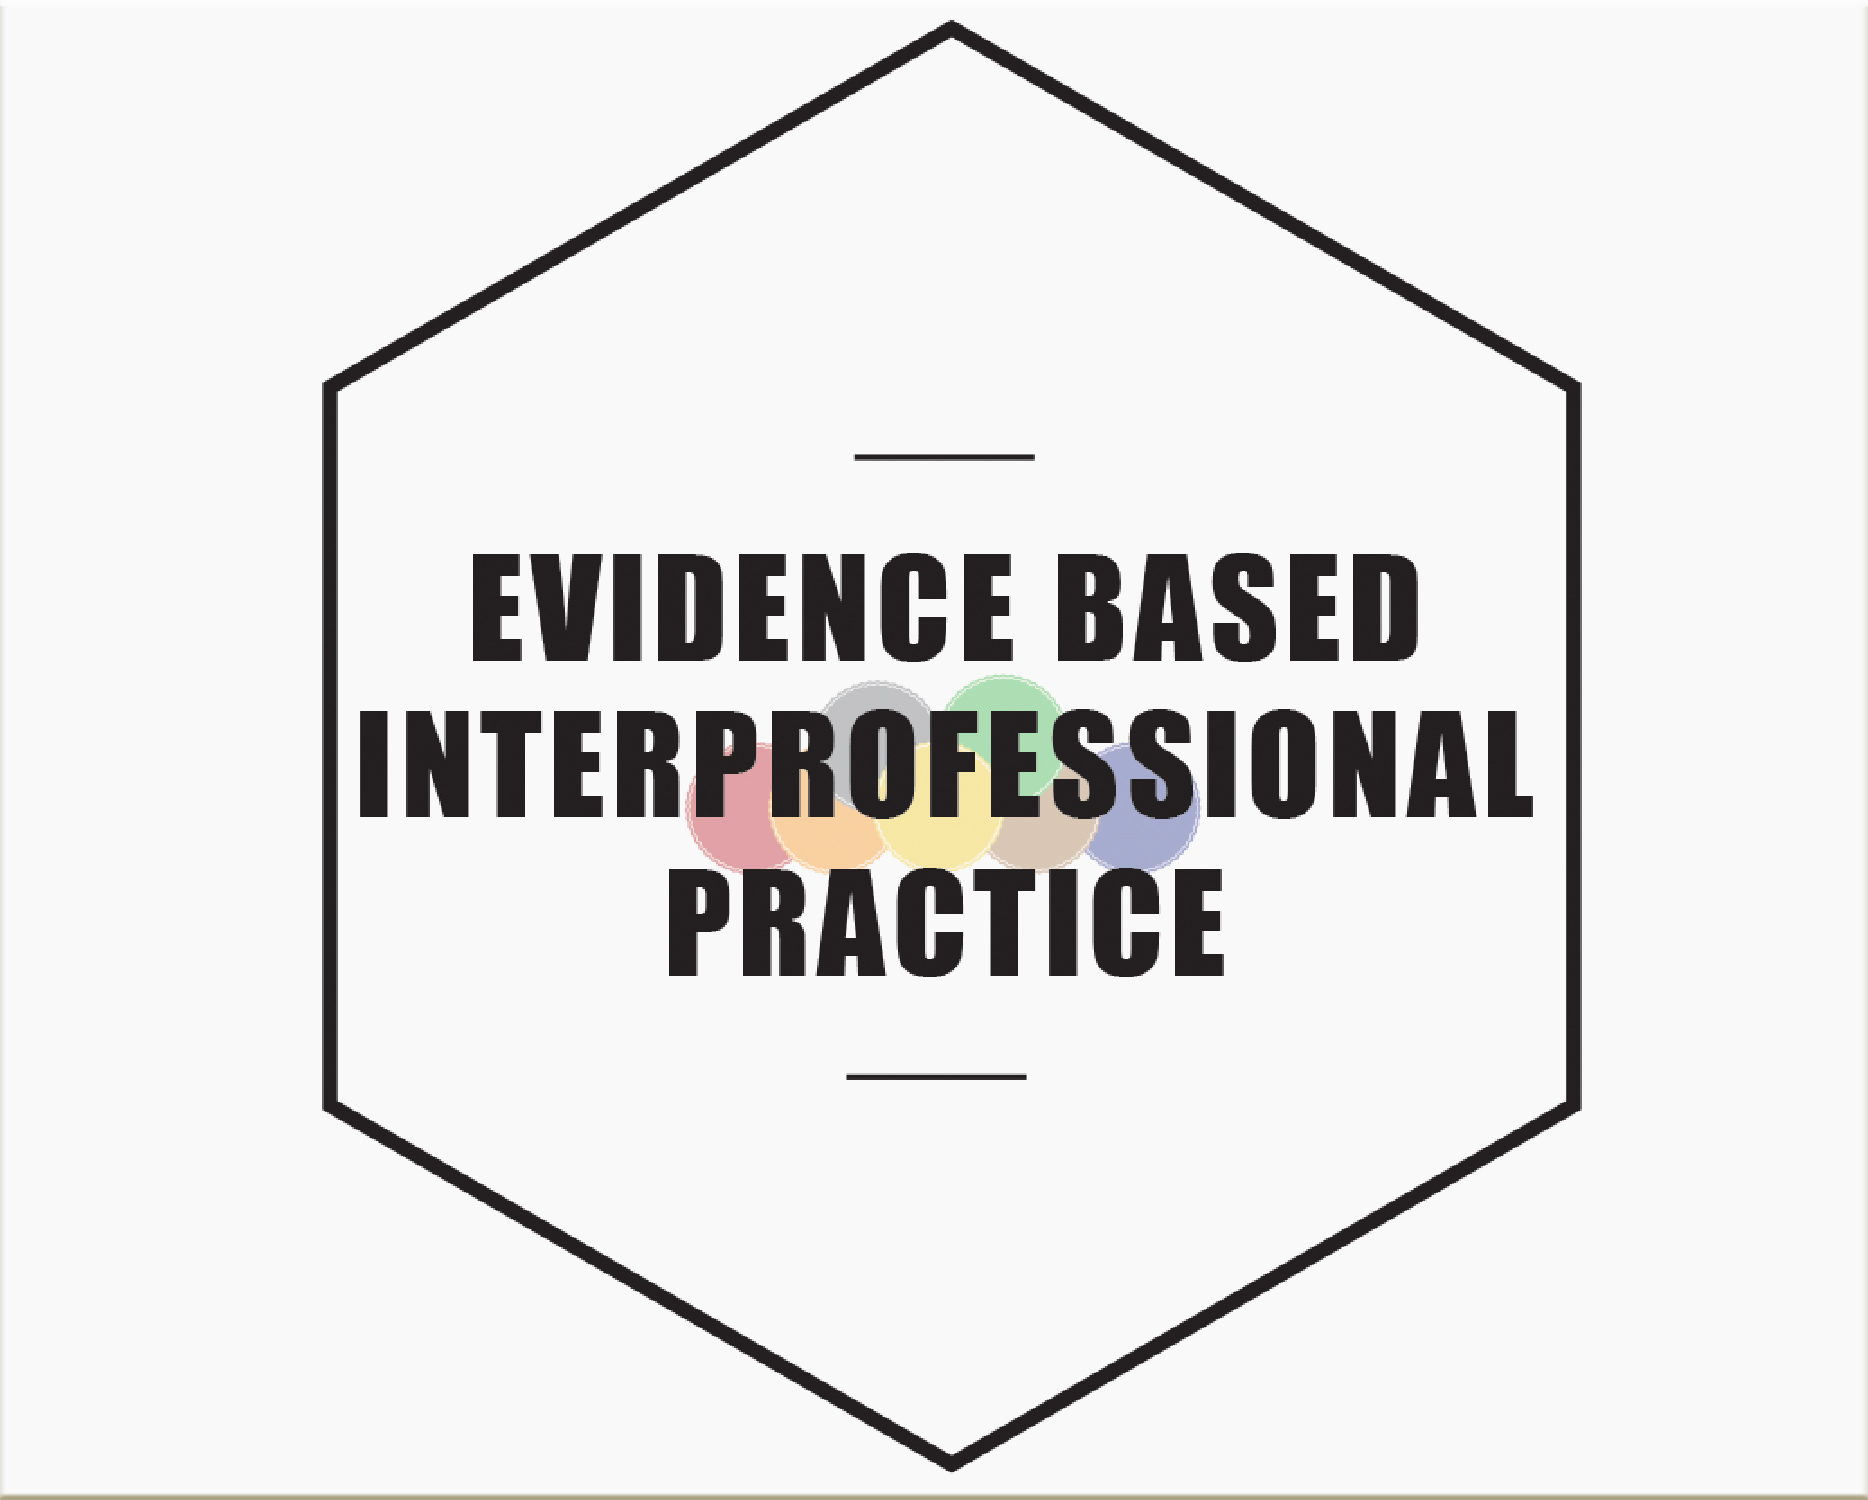 Evidence based interprofessional practice